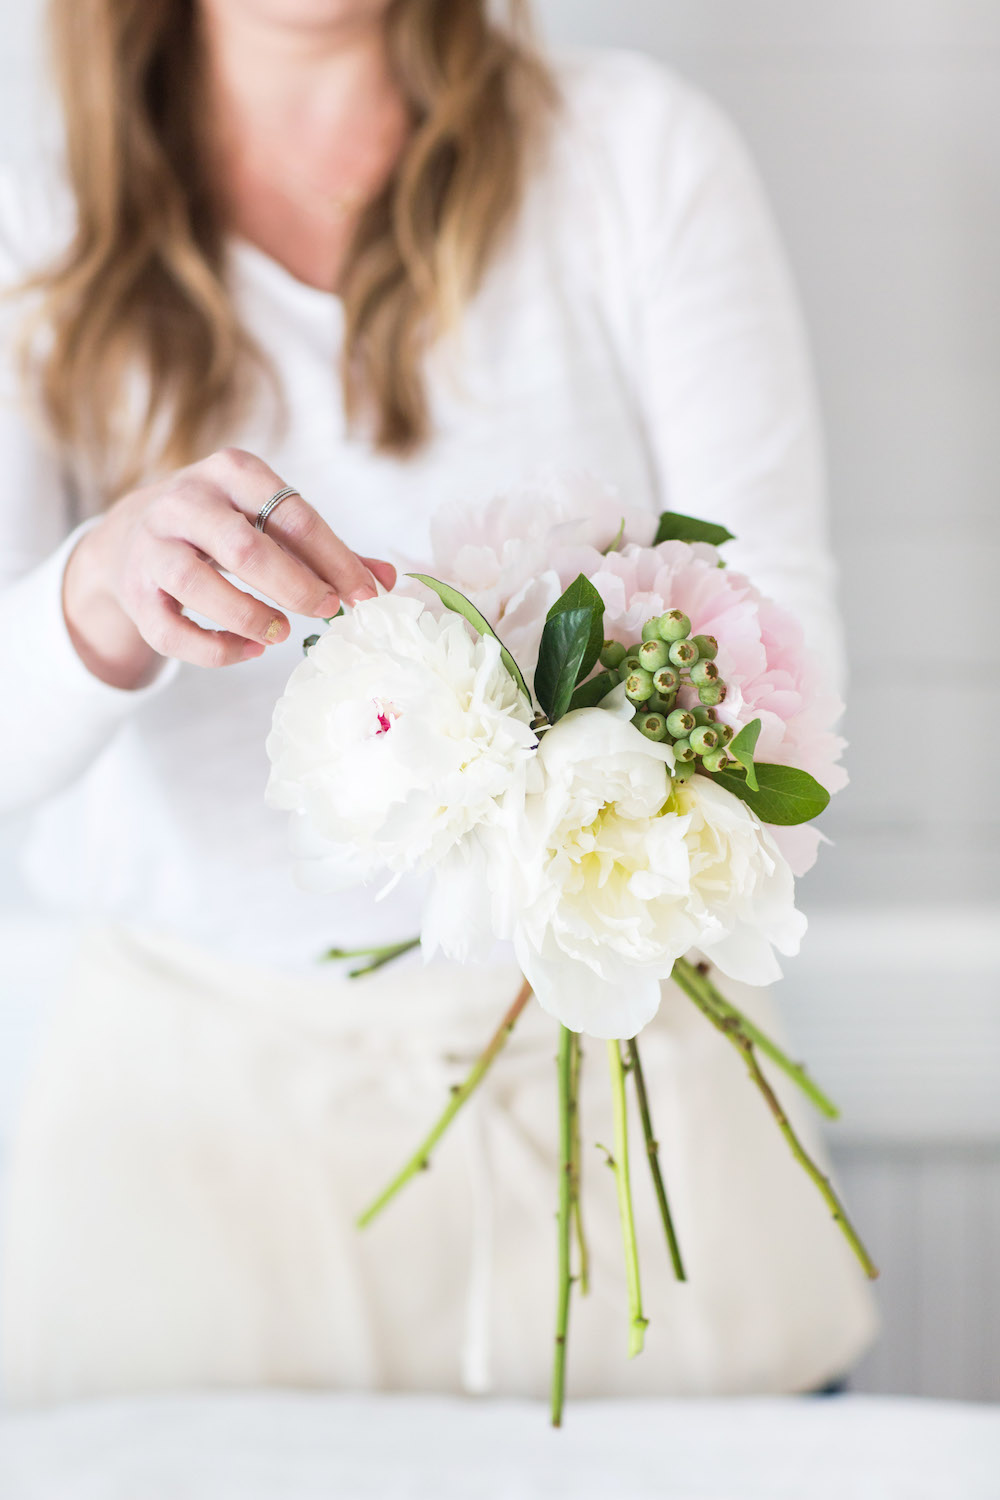 Diy Peony Wedding Bouquet Tutorial Whitney Blake